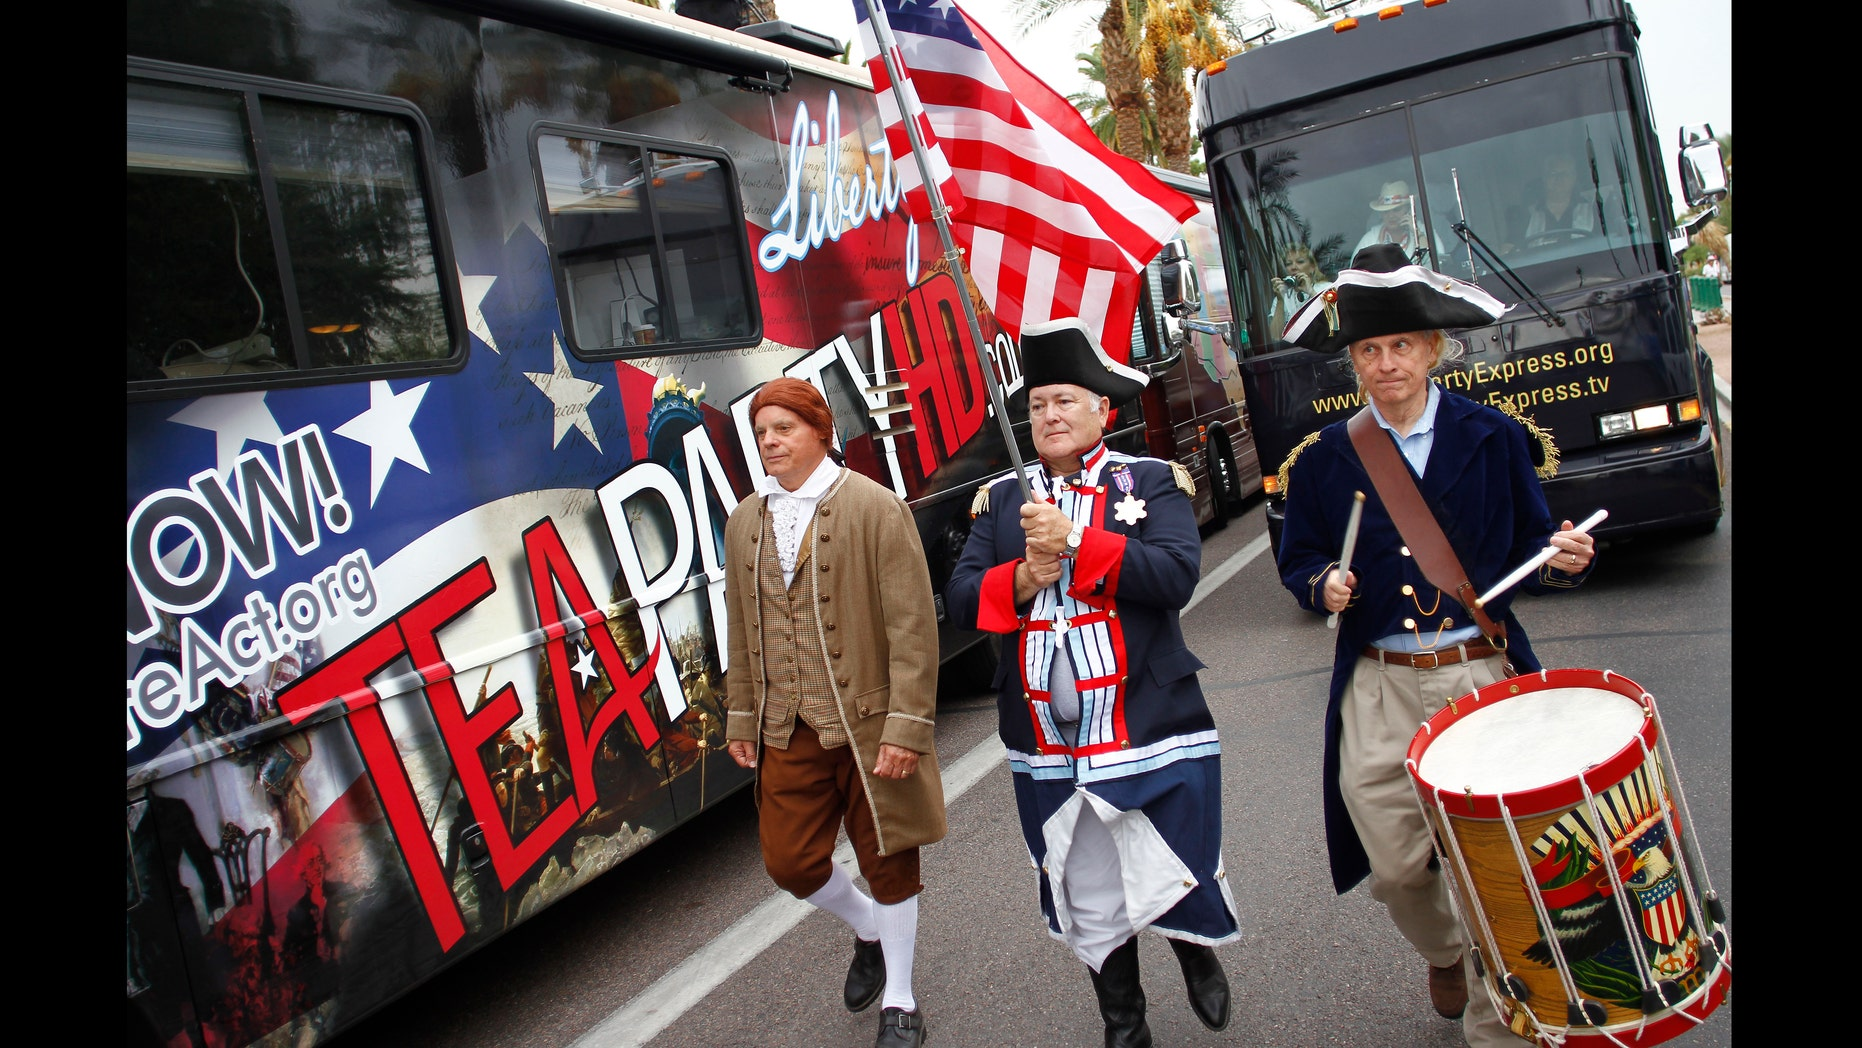 PHOENIX, AZ -  OCTOBER 22:  (L-R) Doctor Lance Hurley, John Rosado and Mitch Markovich wear colonial style attire as they march during the rally for the Tea Party Express national tour October 22, 2010 in Phoenix, Arizona. The tour, part of an initiative to get conservatives elected to the House and Senate, will move across country and conclude on November 1, 2010 in Concord, New Hampshire the day before the contentious mid-term elections. (Photo by Joshua Lott/Getty Images)